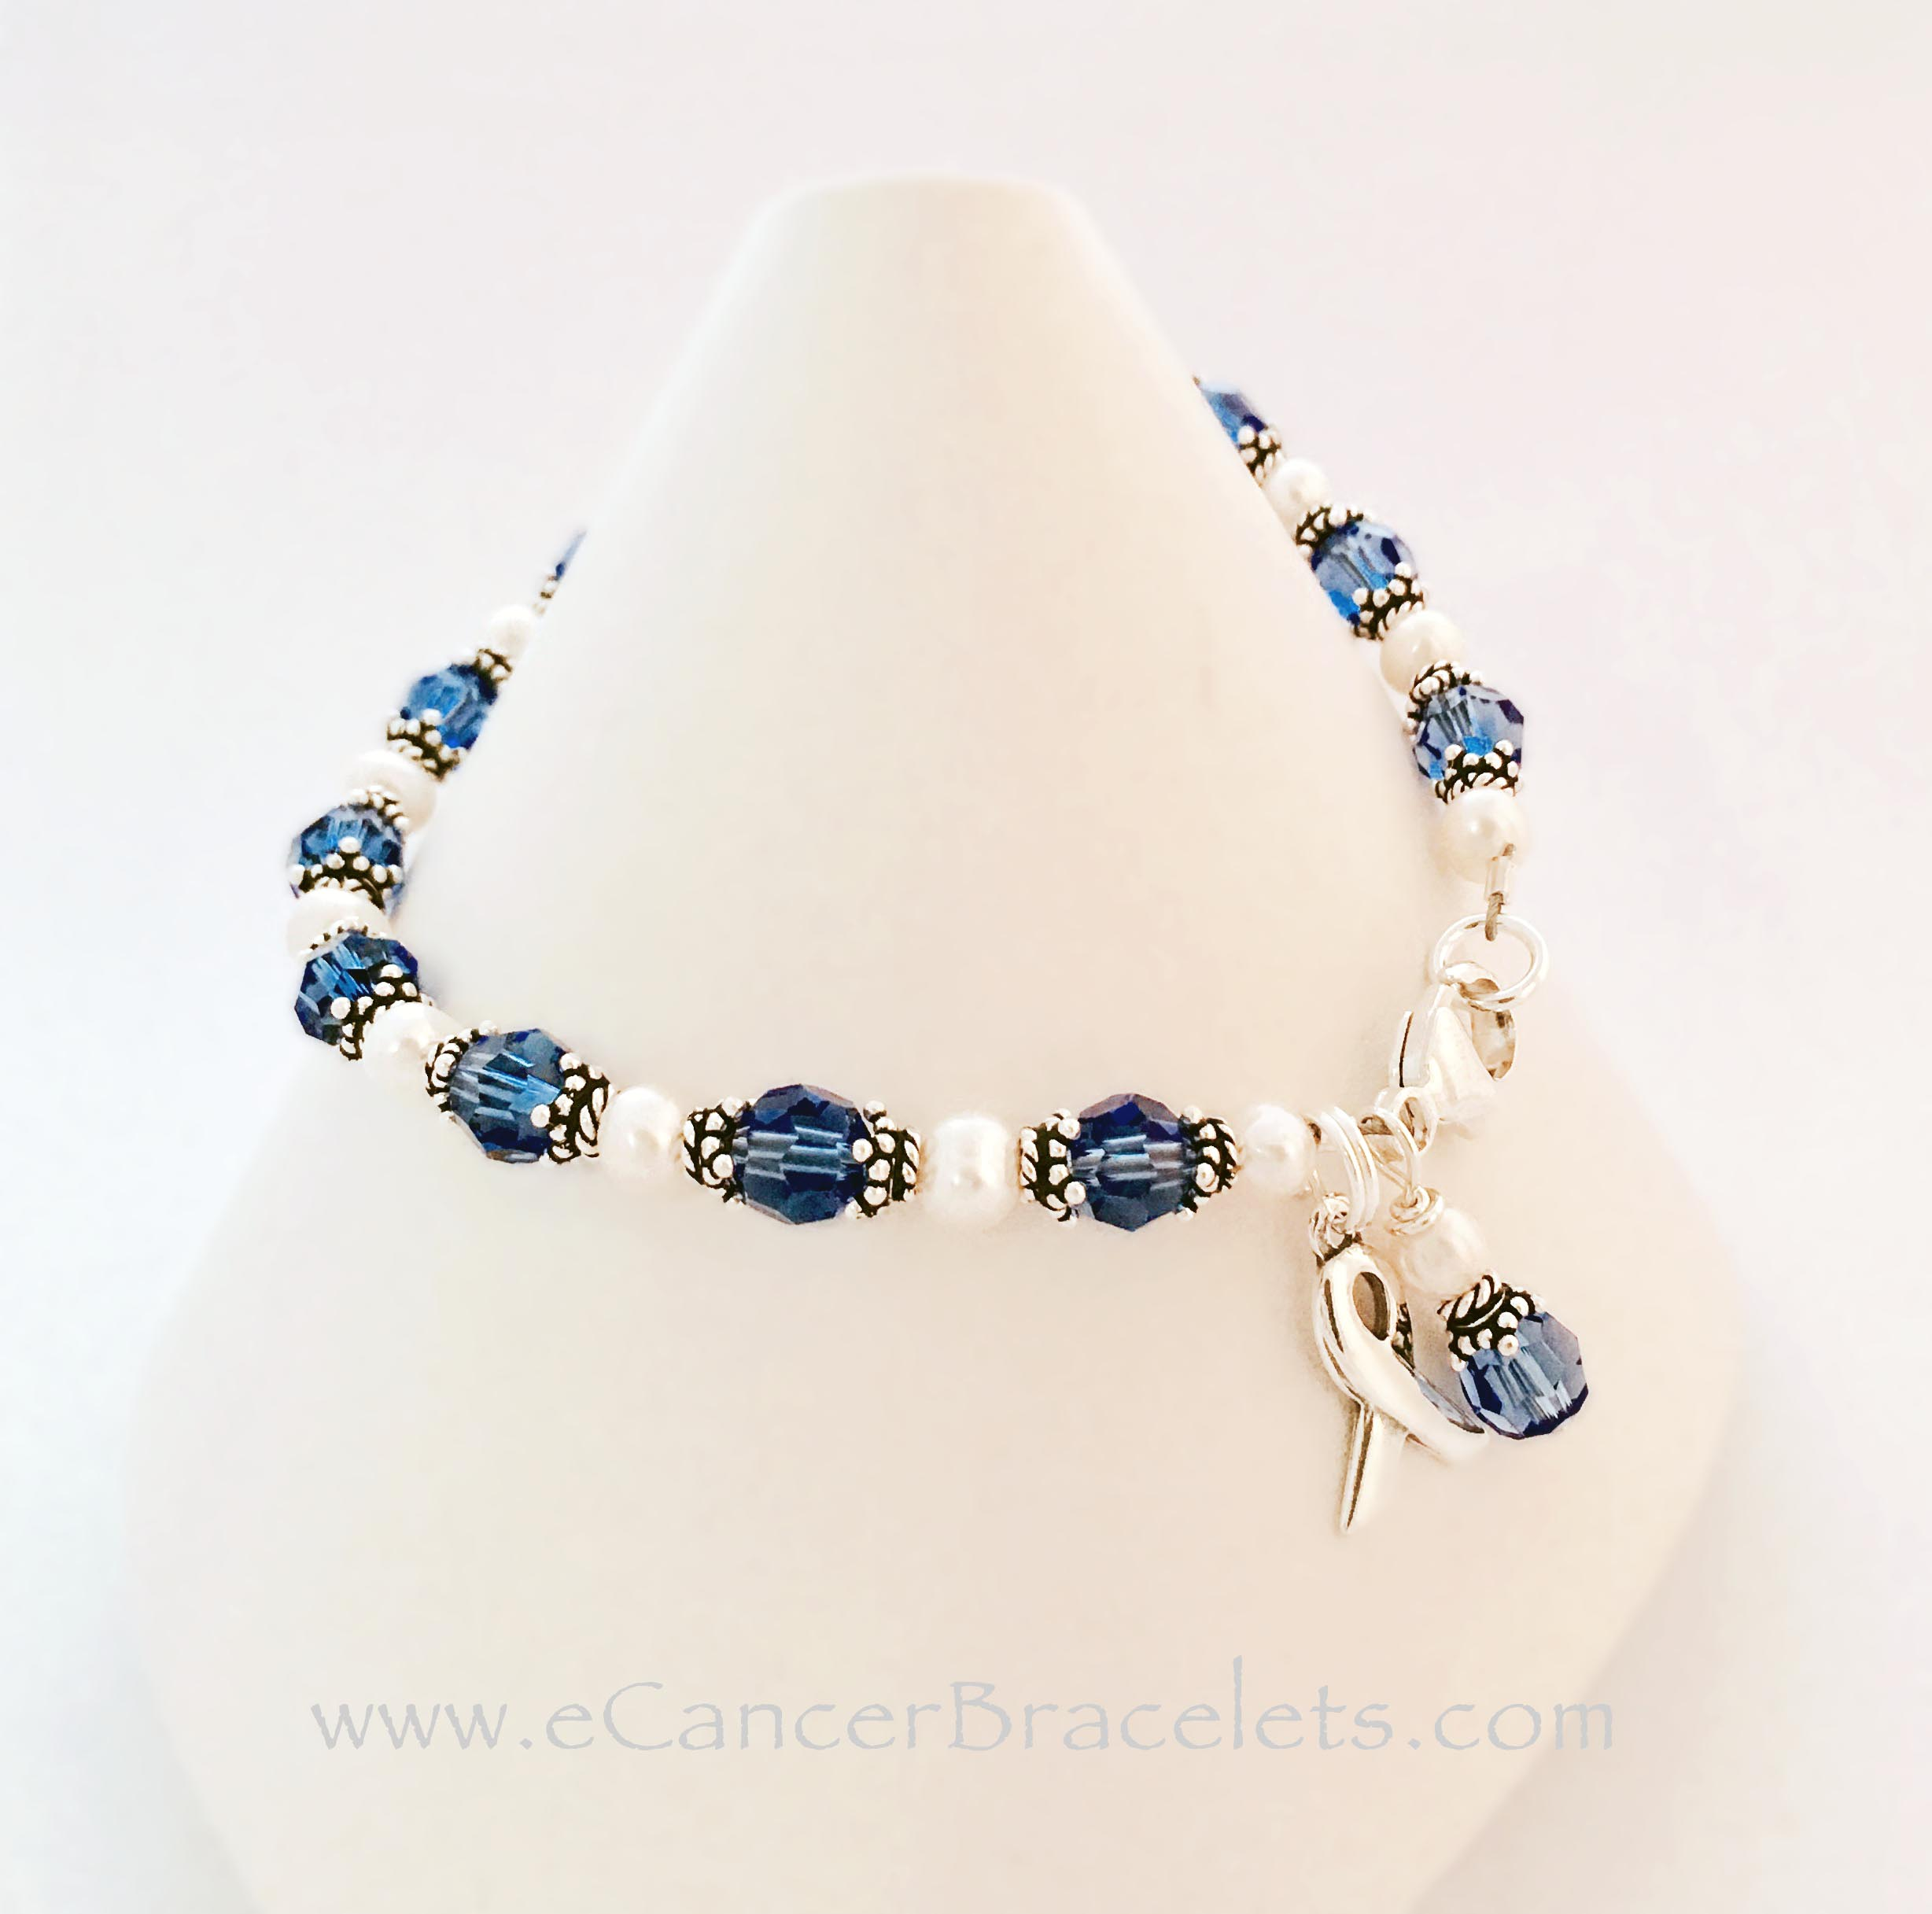 Colon Cancer Bracelet CBB-R31 This Blue Ribbon Bracelet is shown with dark blue crystals which can signify Colon Cancer. A Ribbon and Crystal dangle charm are included in the price.